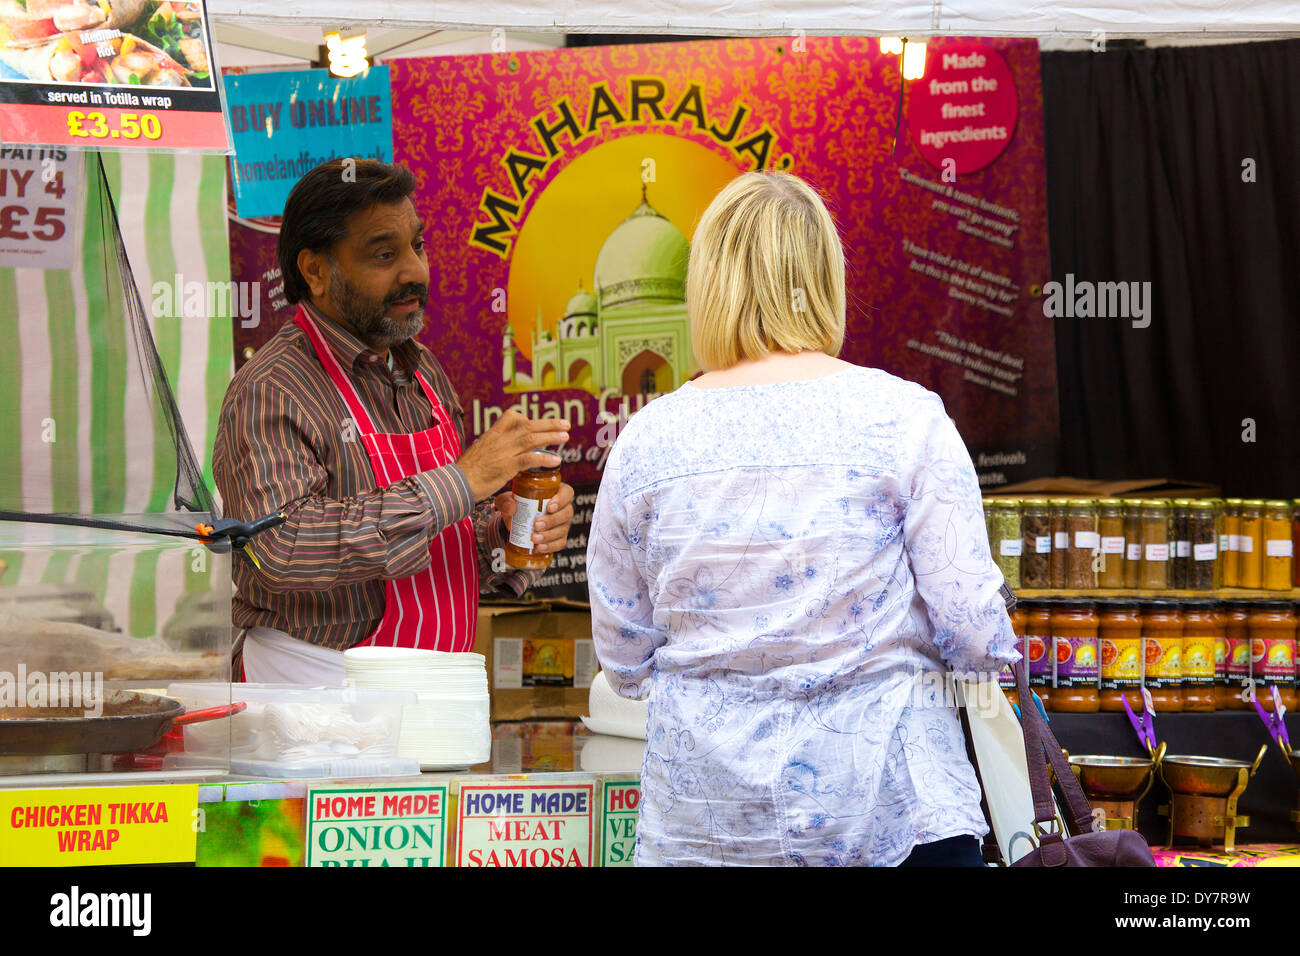 Woman in front of Indian food stall at food festival. Carlisle Continental Market, Carlisle, Cumbria, England, United Kingdom. - Stock Image